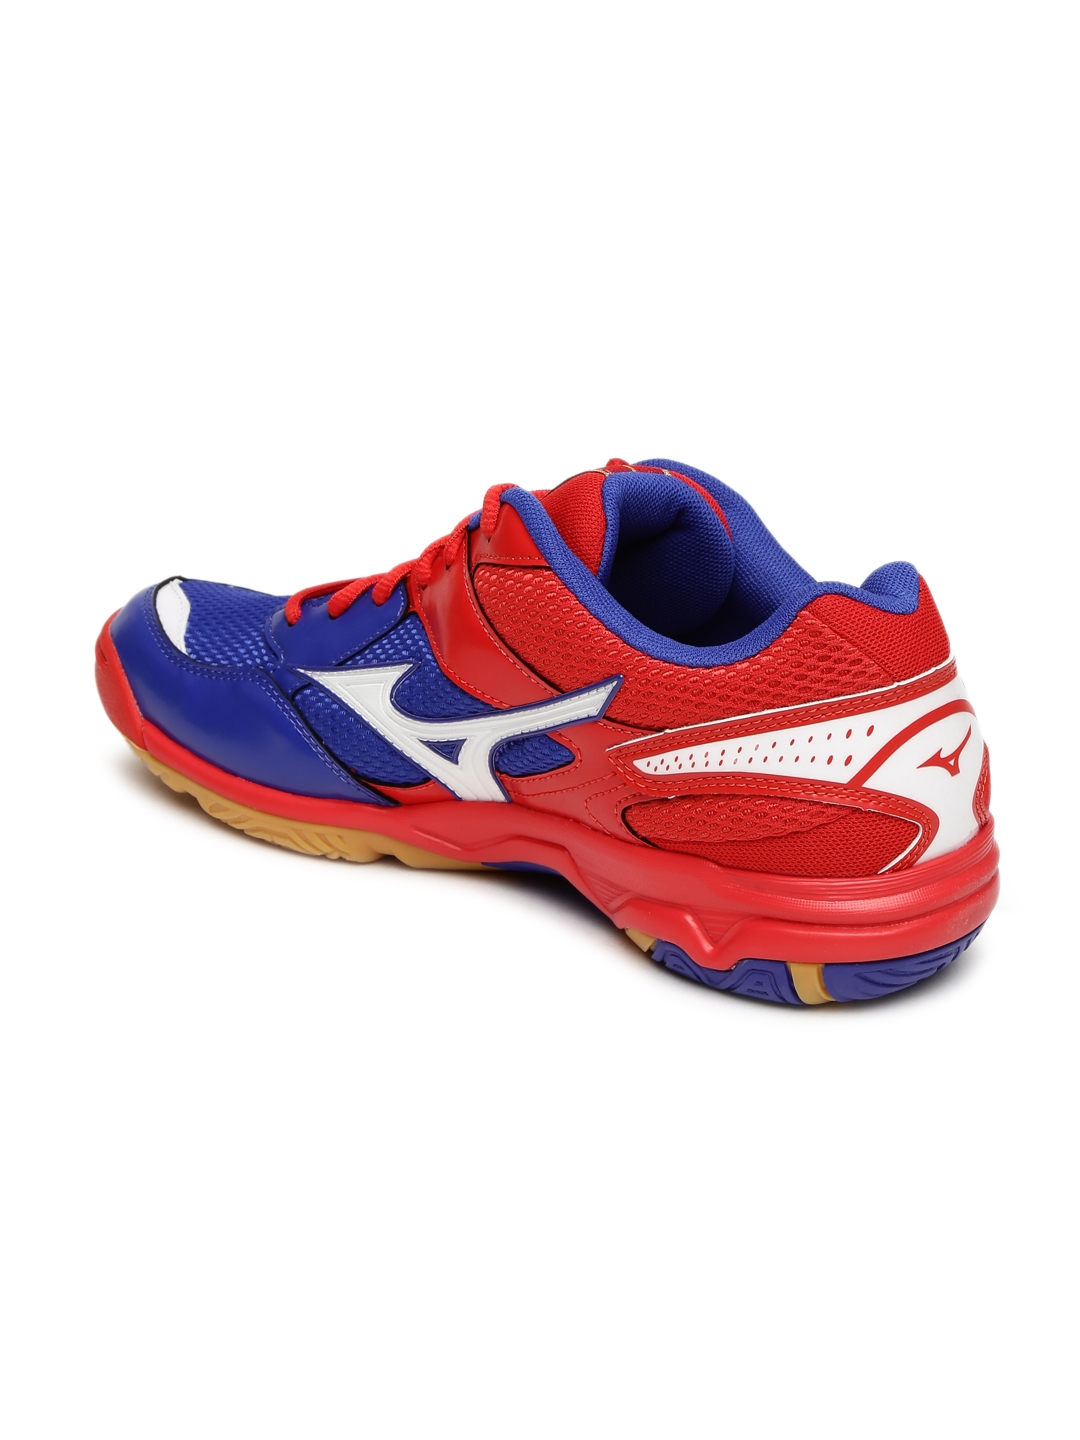 14ef8a67f1d0 Buy Mizuno Men Blue & Red Wave Twister 4 Indoor Shoes - Sports Shoes ...